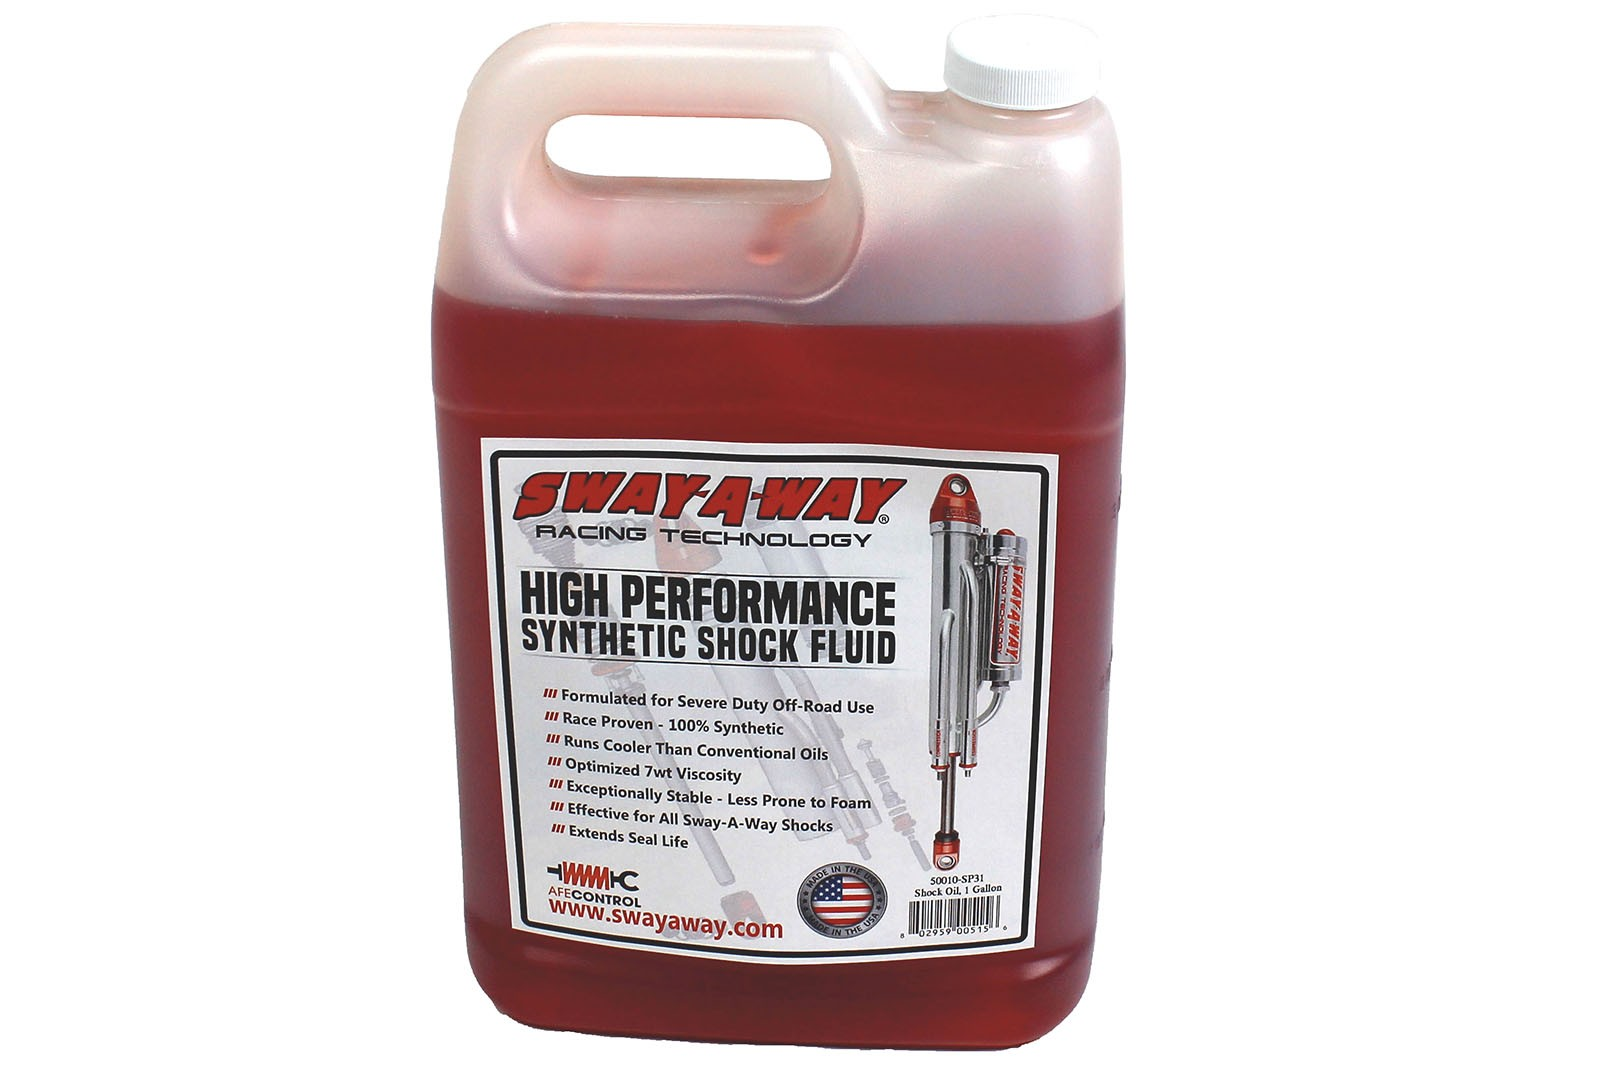 aFe POWER 50010-SP31 aFe Control Sway-A-Way Shock Oil, 1 Gallon